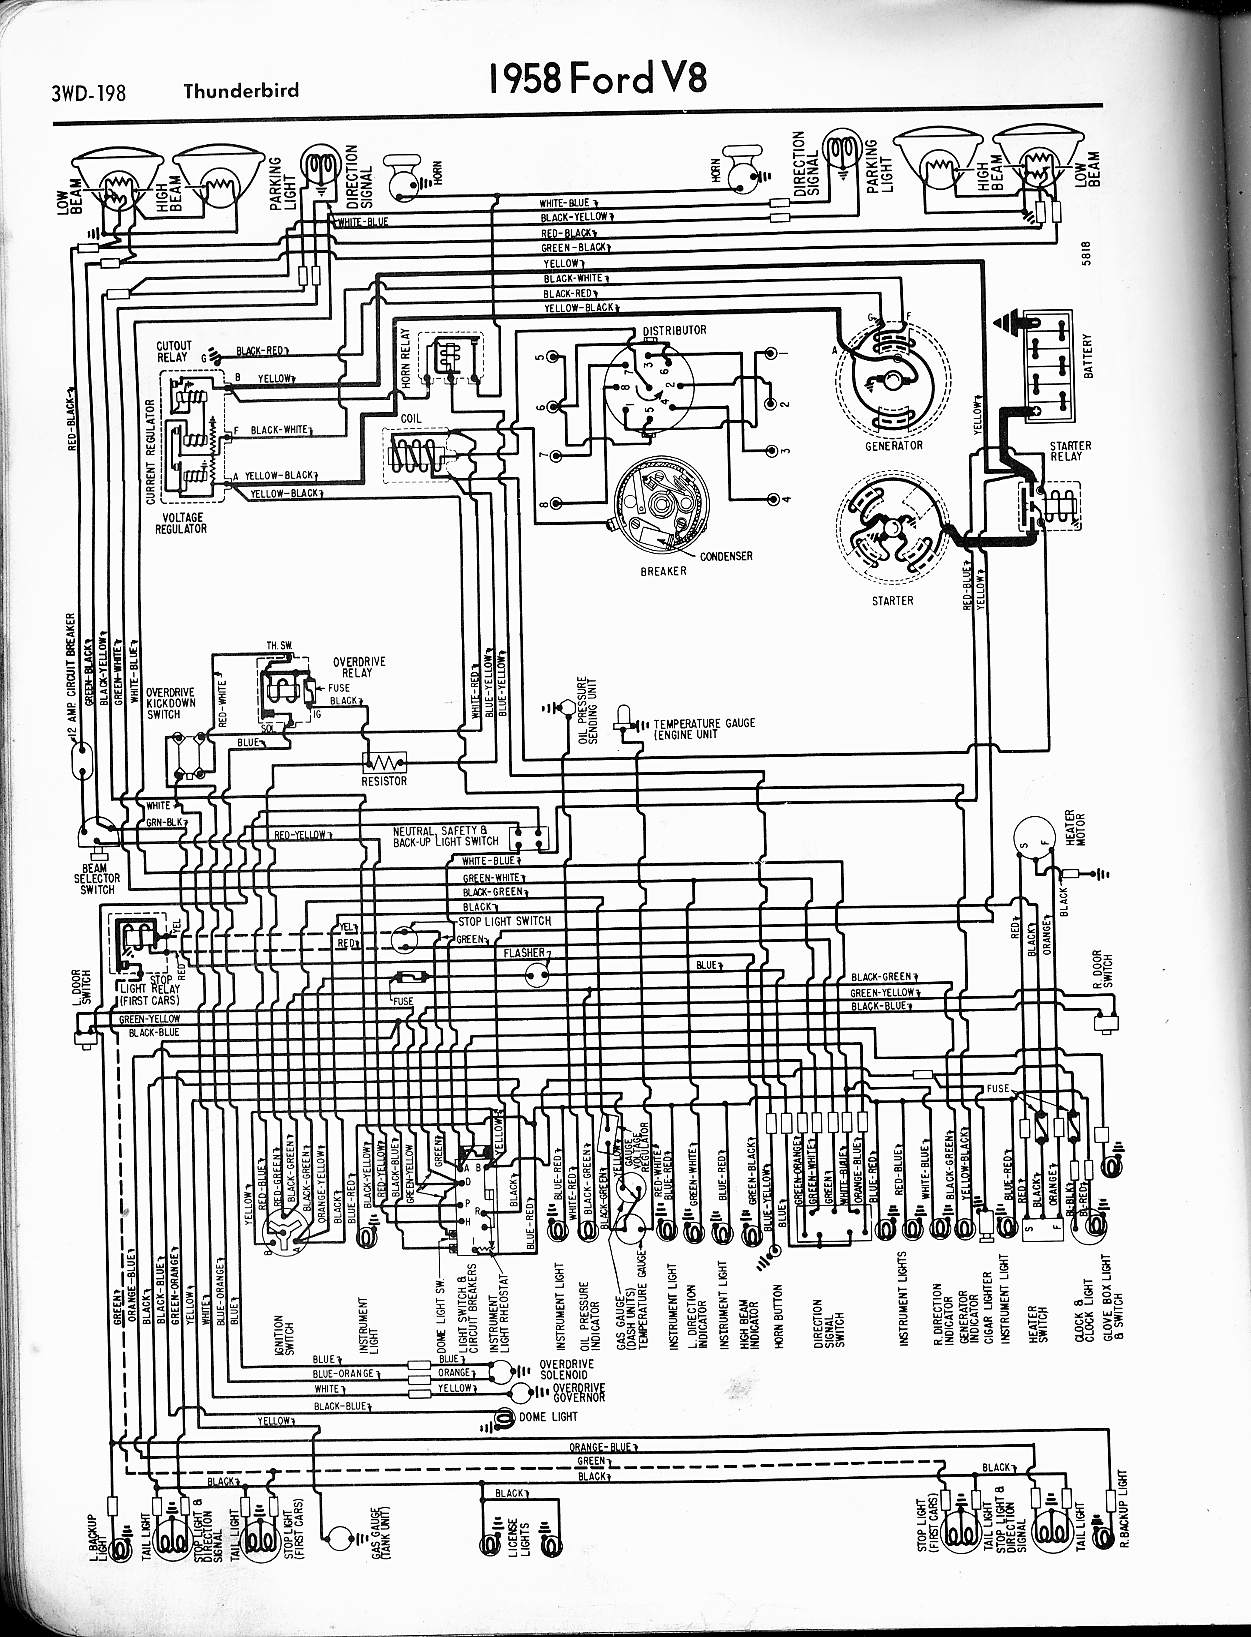 57 65 ford wiring diagrams 1957 thunderbird air cleaner 1957 thunderbird power window wiring diagram #3